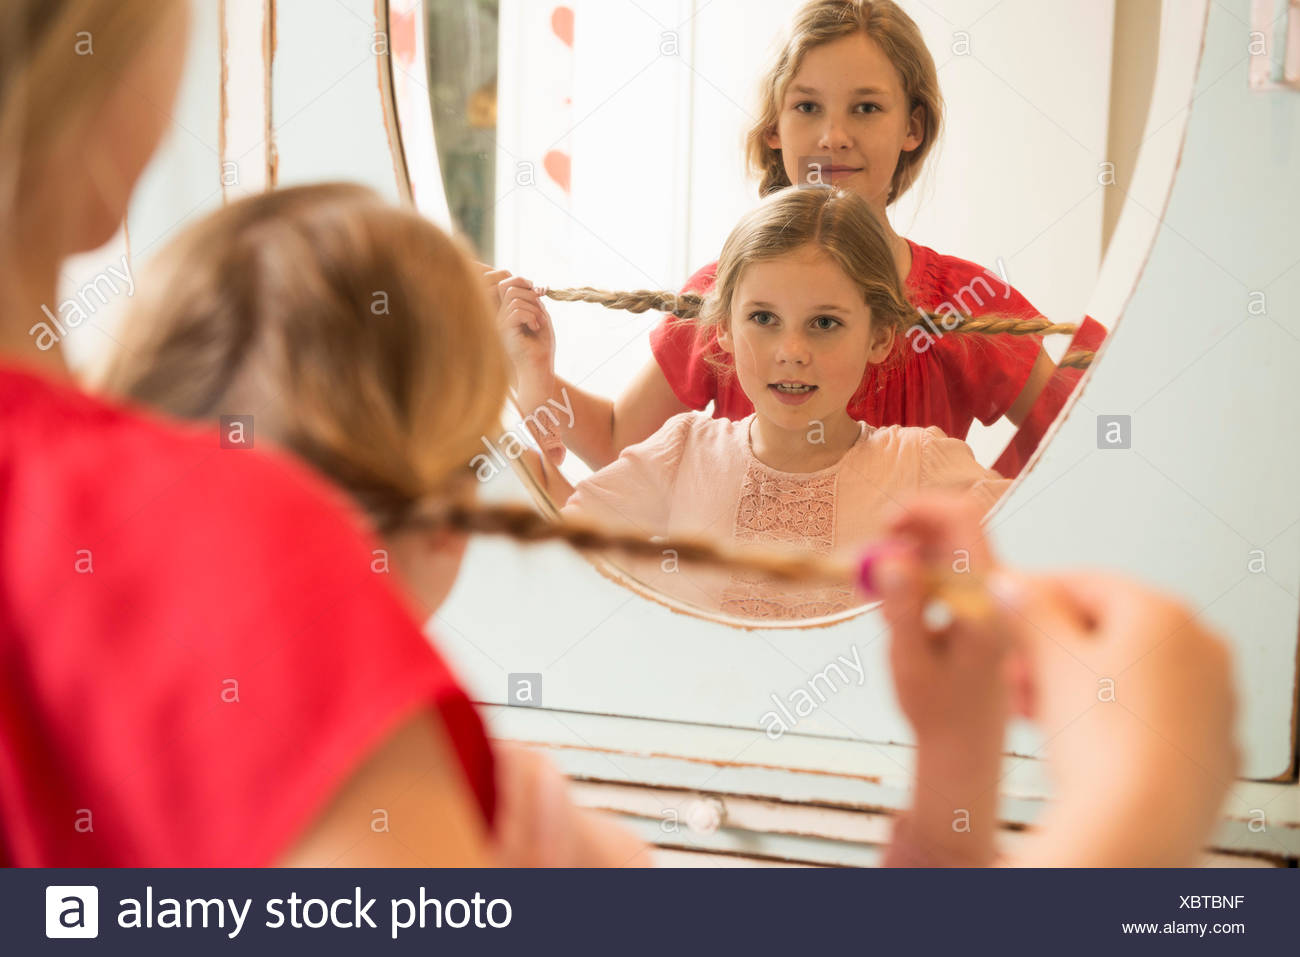 Sisters holding up plaits in bedroom mirror - Stock Image